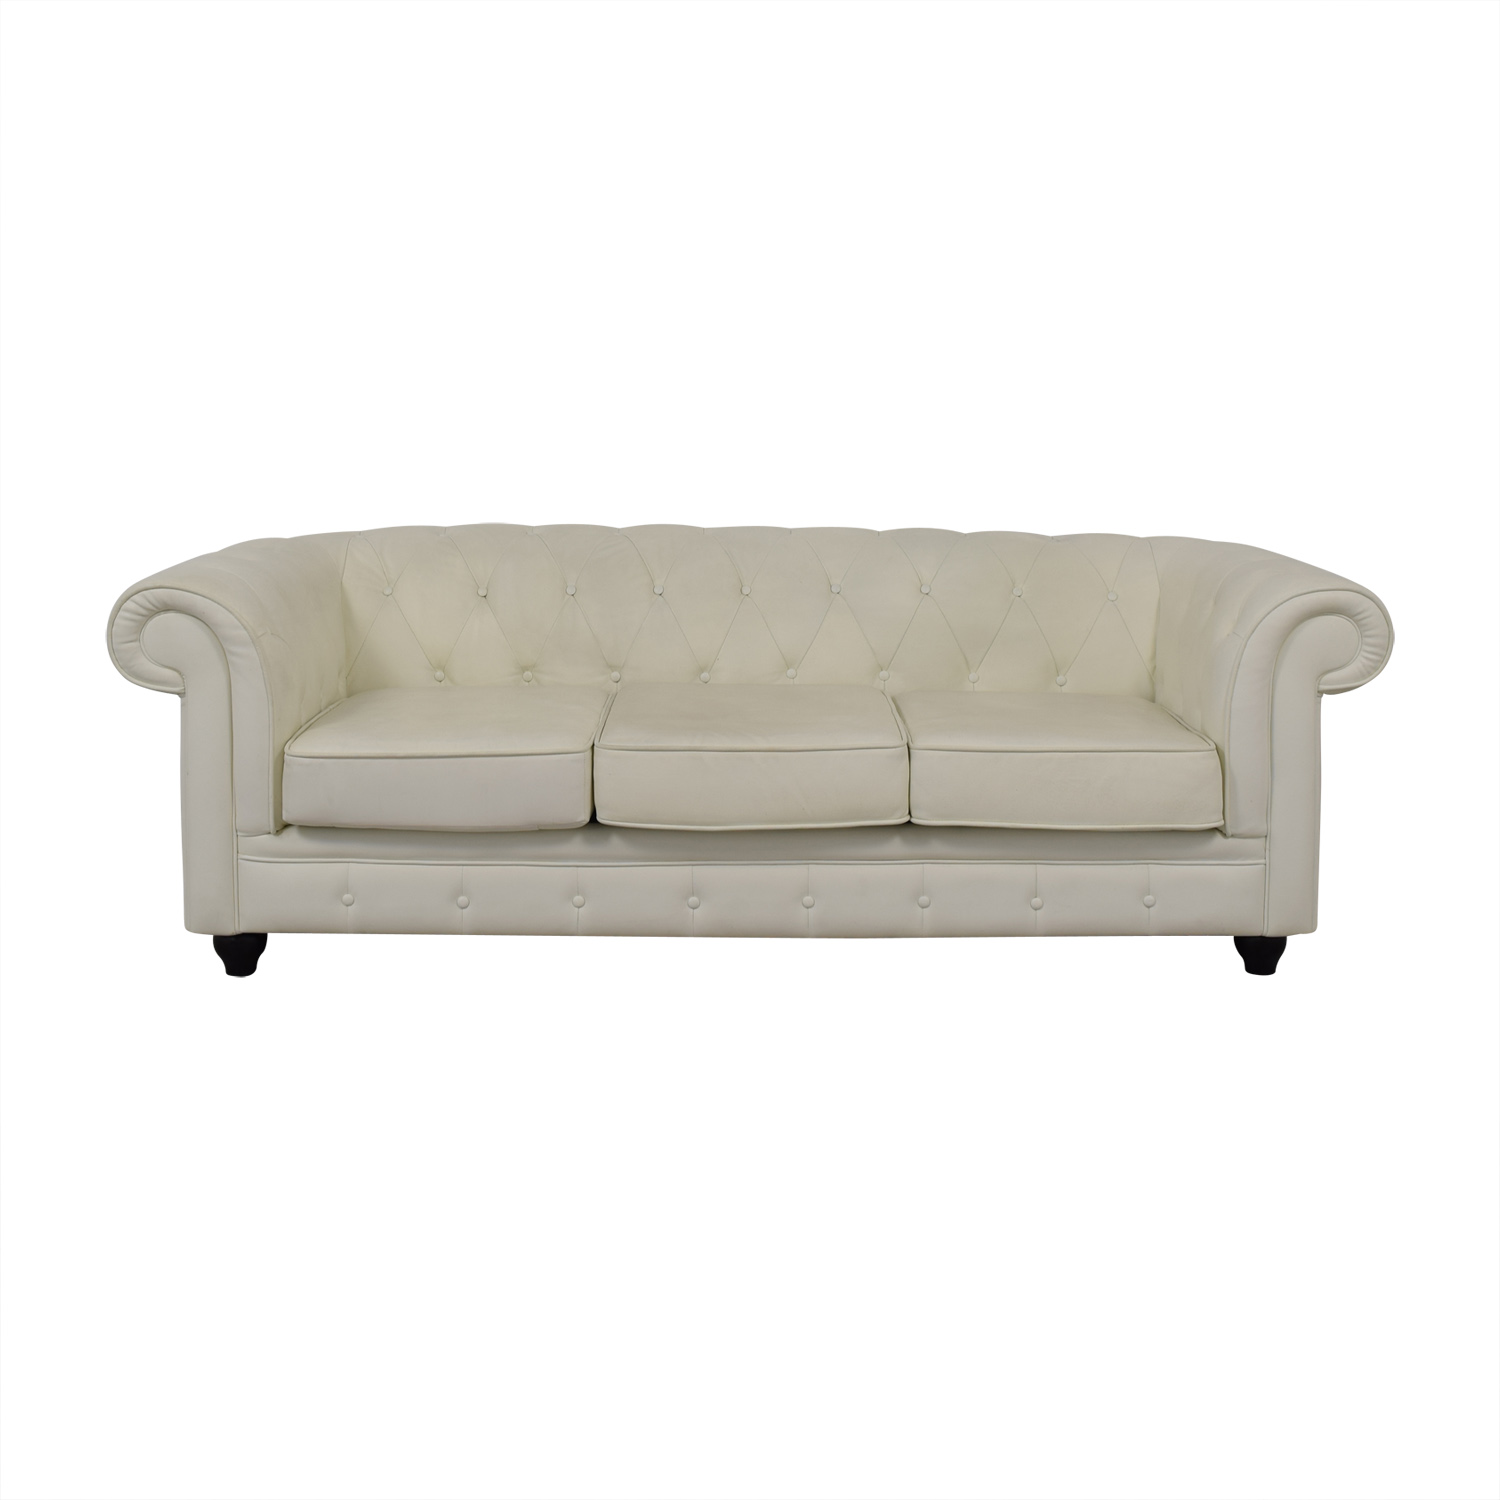 Modani Furniture Modani Furniture Chesterfield White Tufted Three-Cushion Sofa Sofas